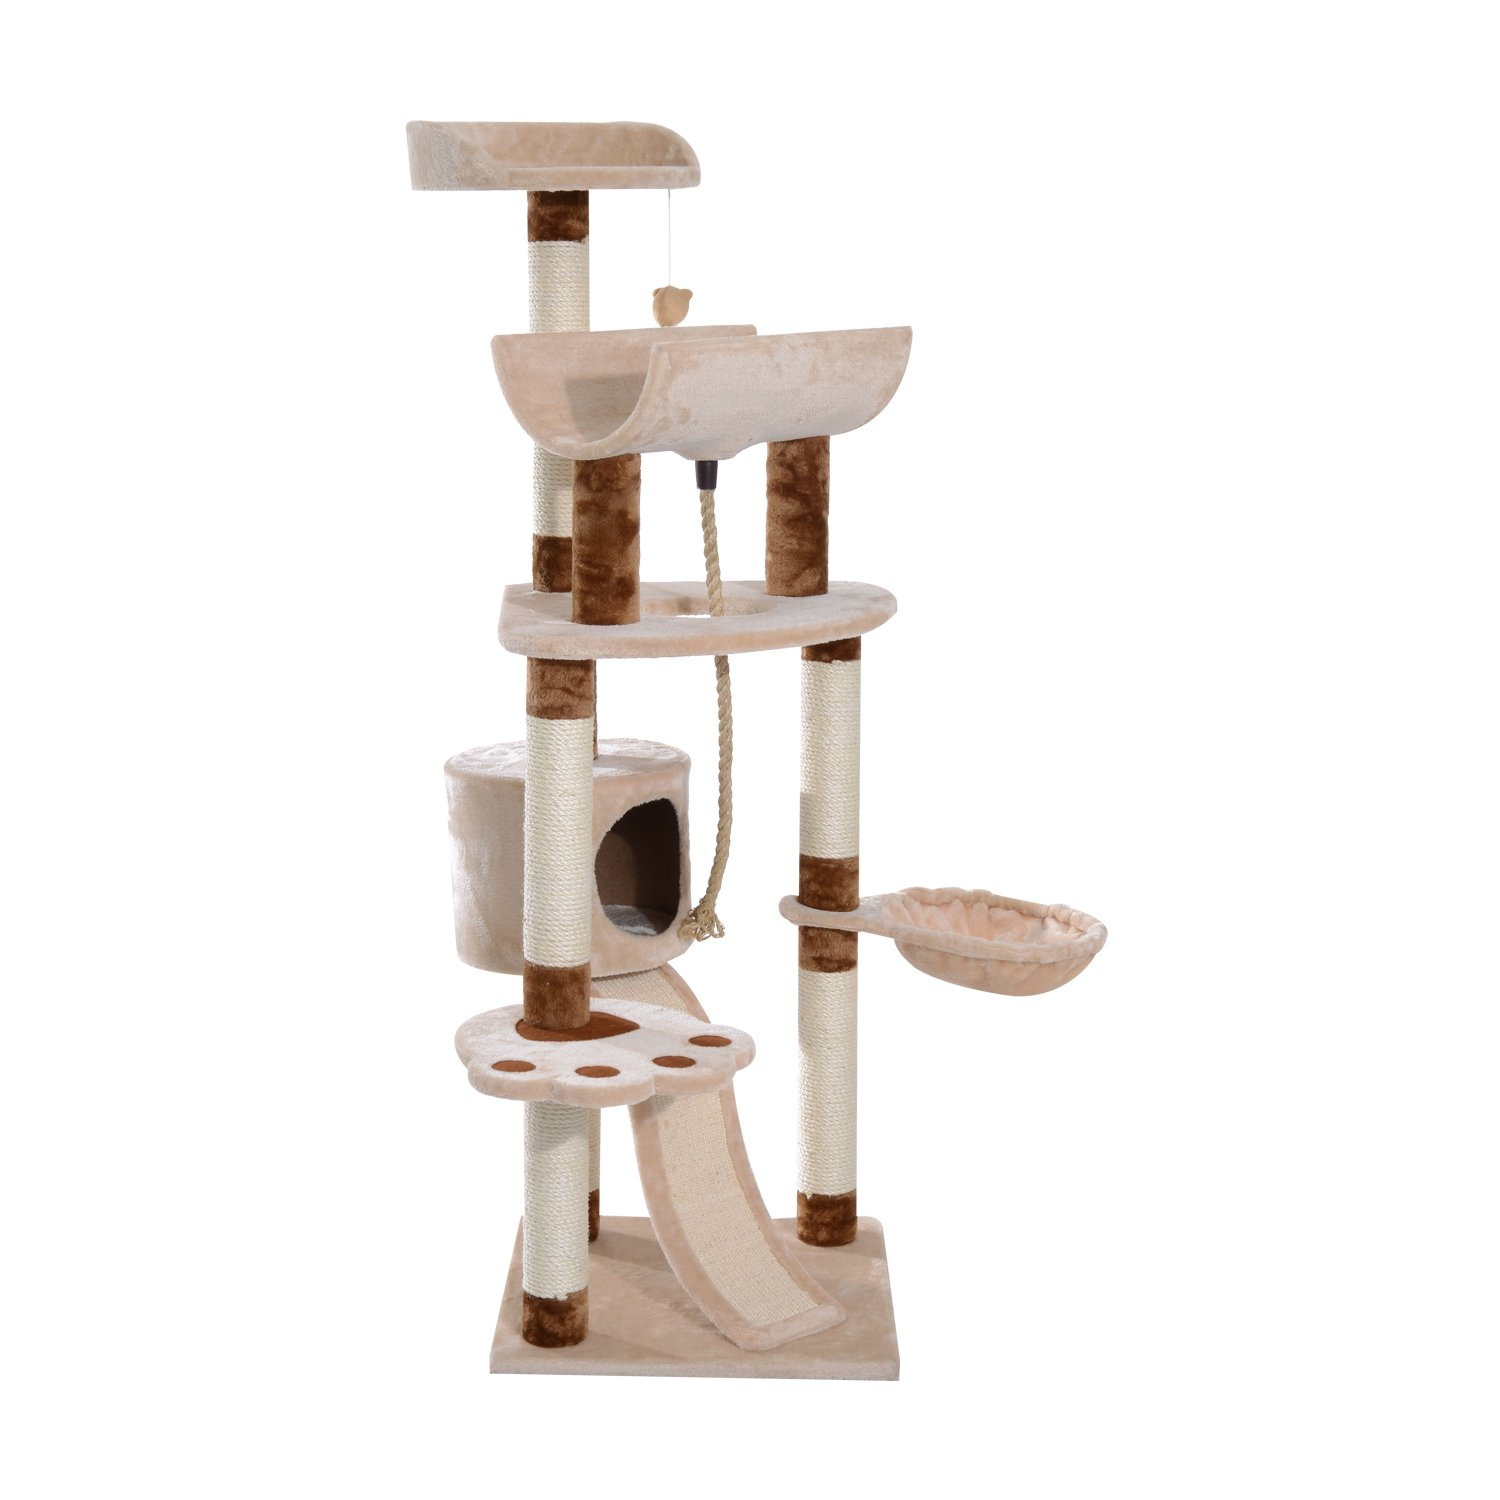 Pawhut 57 Sisal Cat Scratcher Tree Tower Interactive Cat Toy With Perches Cave Ramp Buy Online In Dominica At Dominica Desertcart Com Productid 39723203